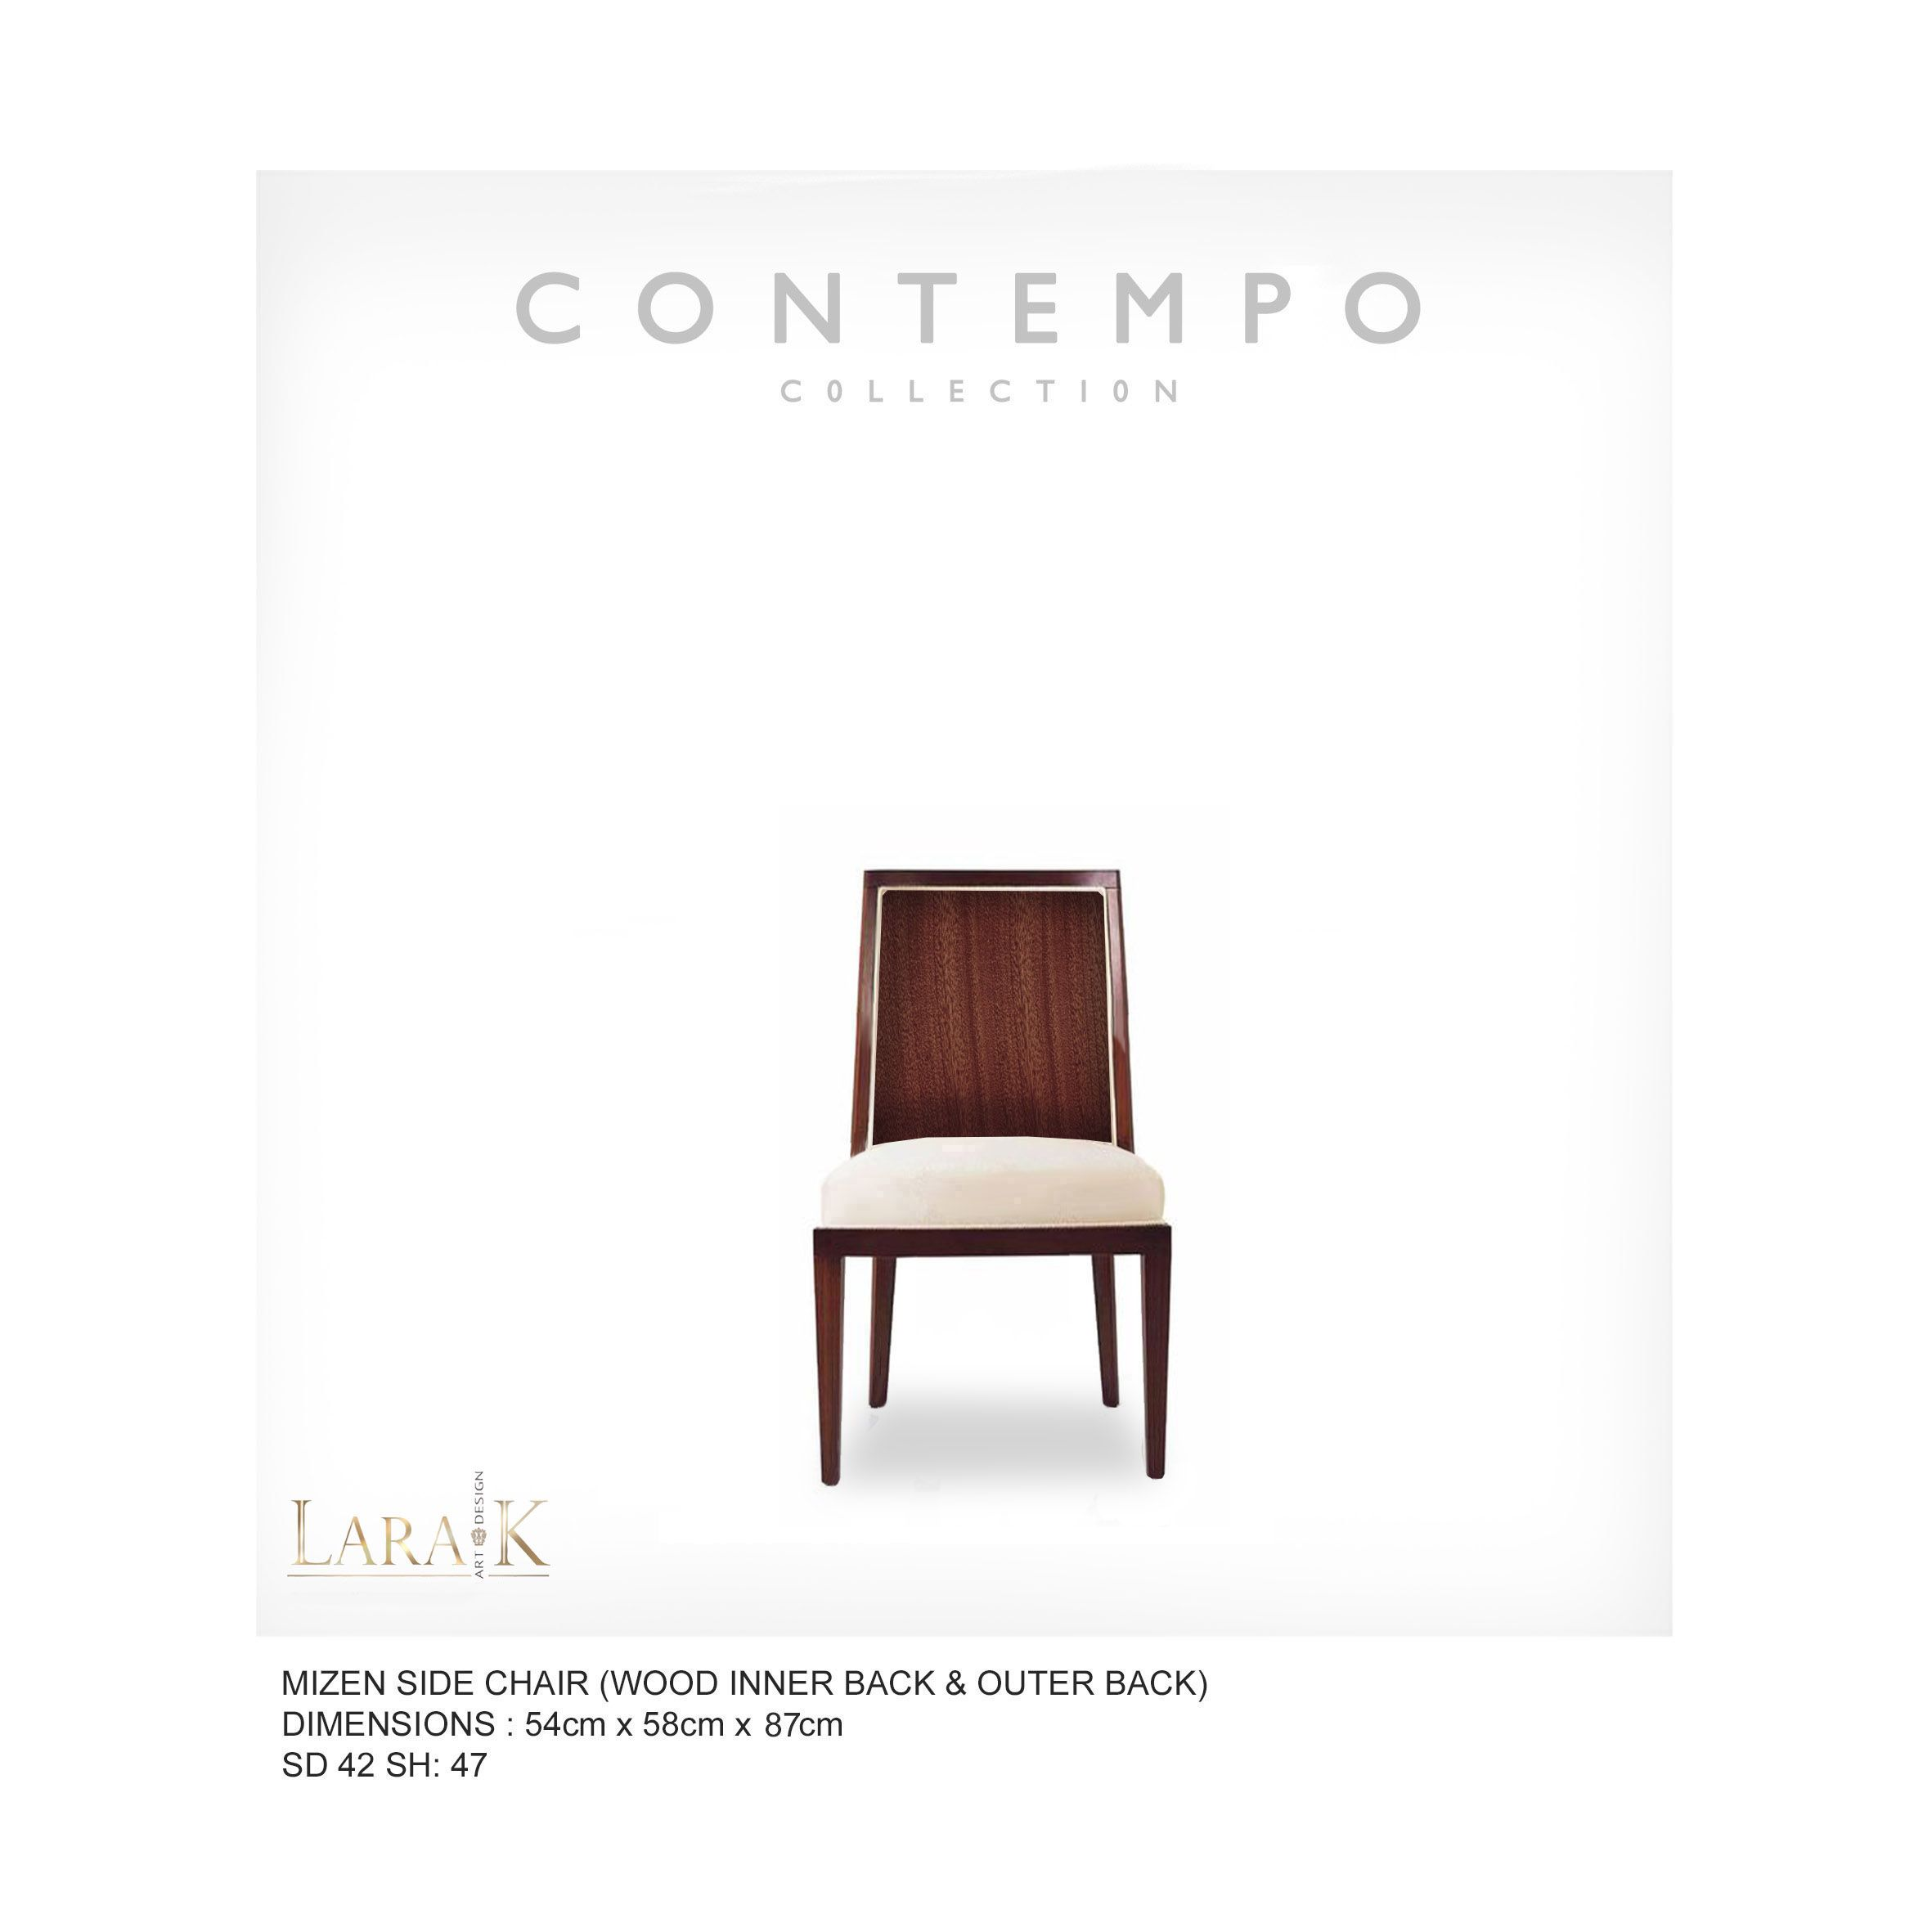 Dr Mizen Dining Side Chair Wb The Contempo Collection Was Created